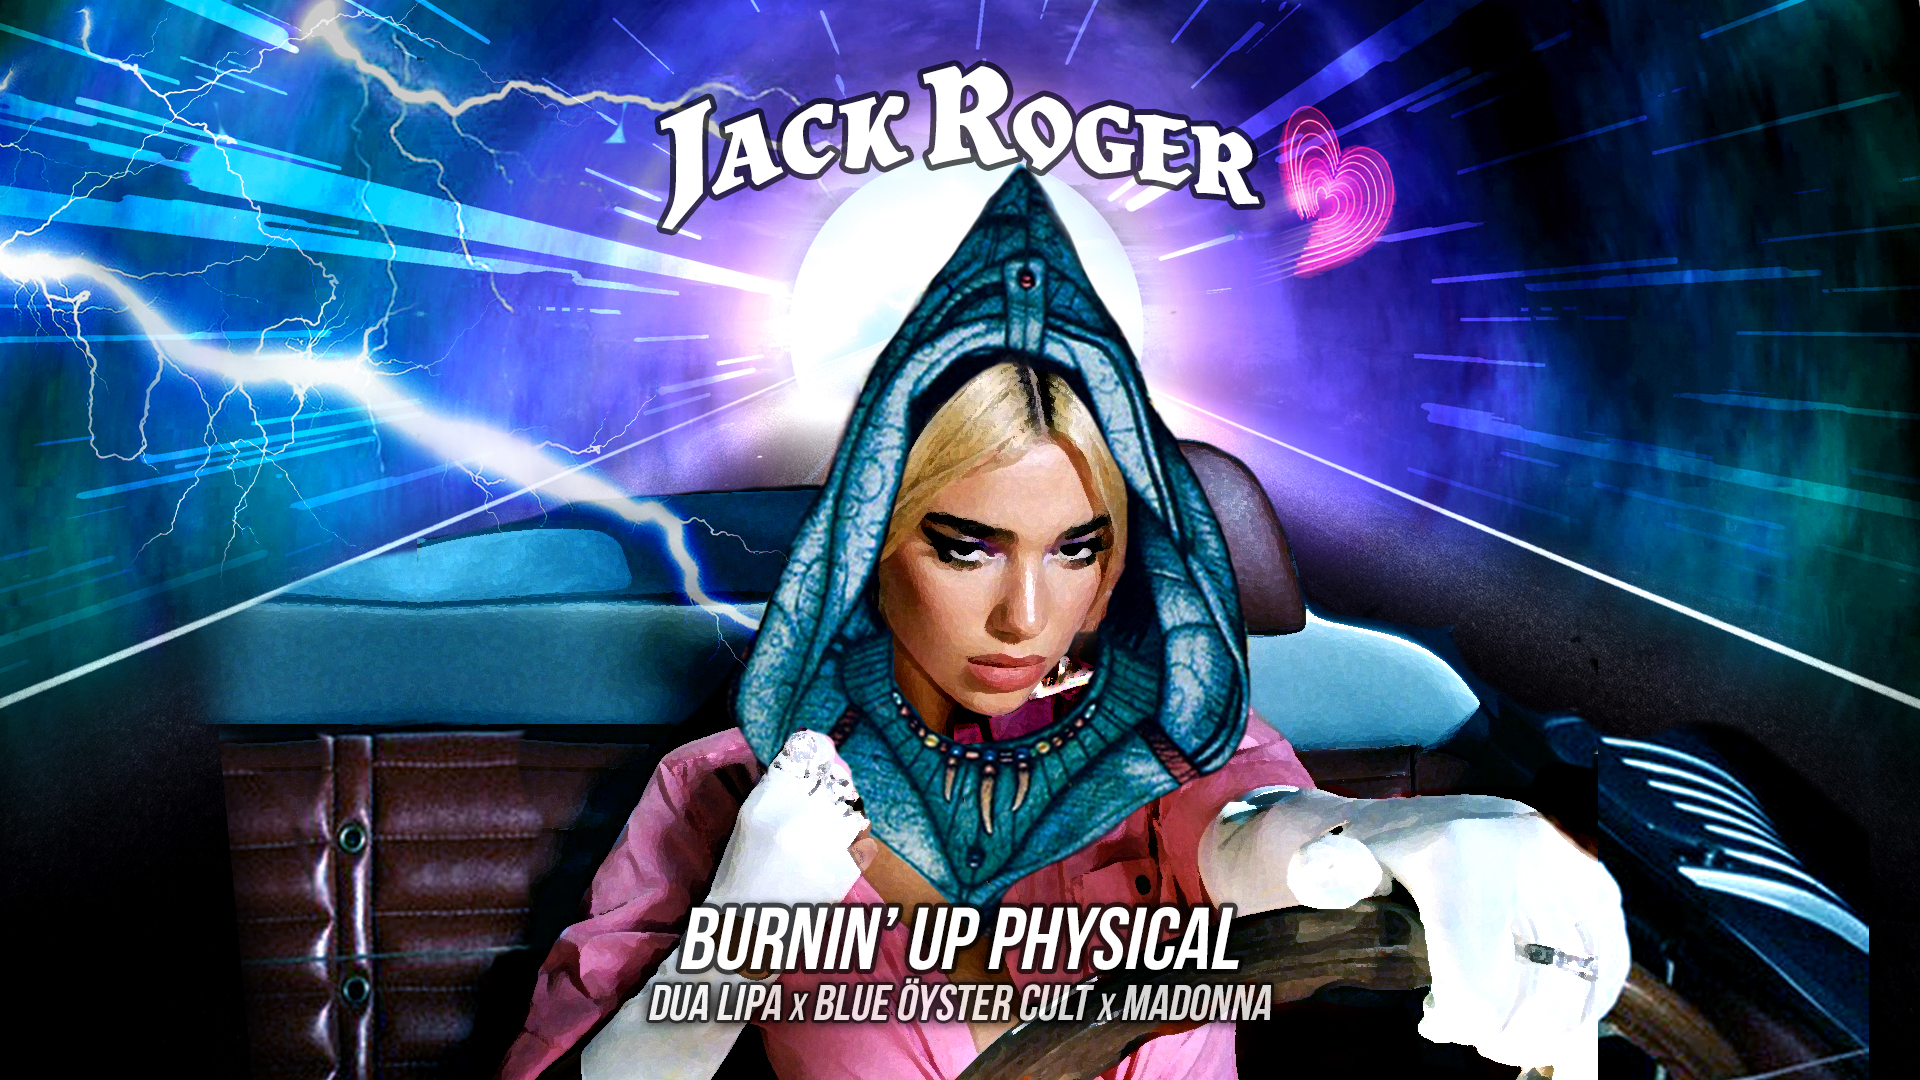 05. Burnin' Up Physical (Dua Lipa, Blue Öyster Cult, Madonna)